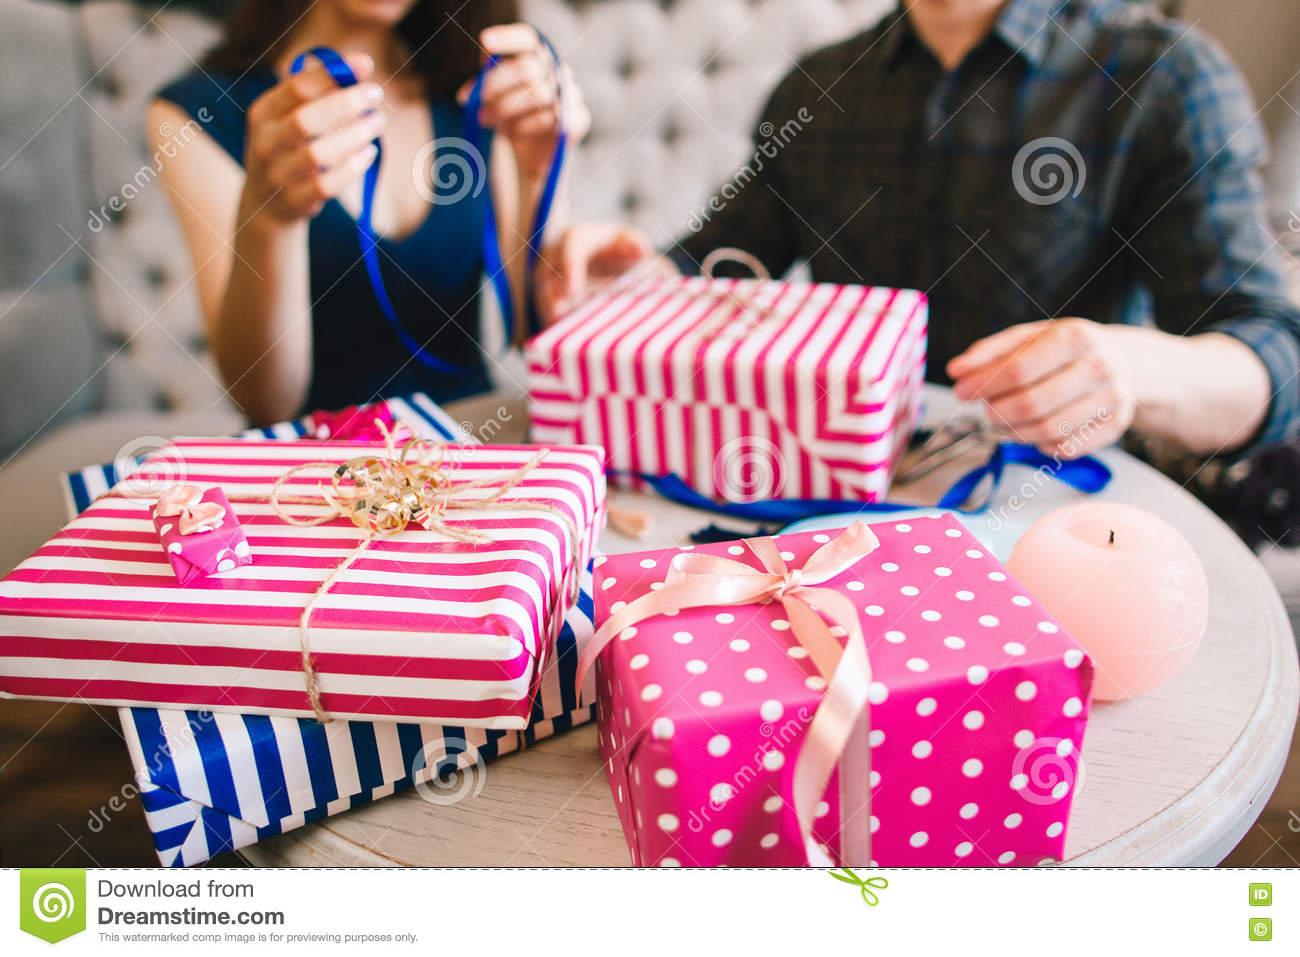 couple wrapping gifts for family and friends focus on bunch of christmas presents on table blurred unrecognizable men and women on background